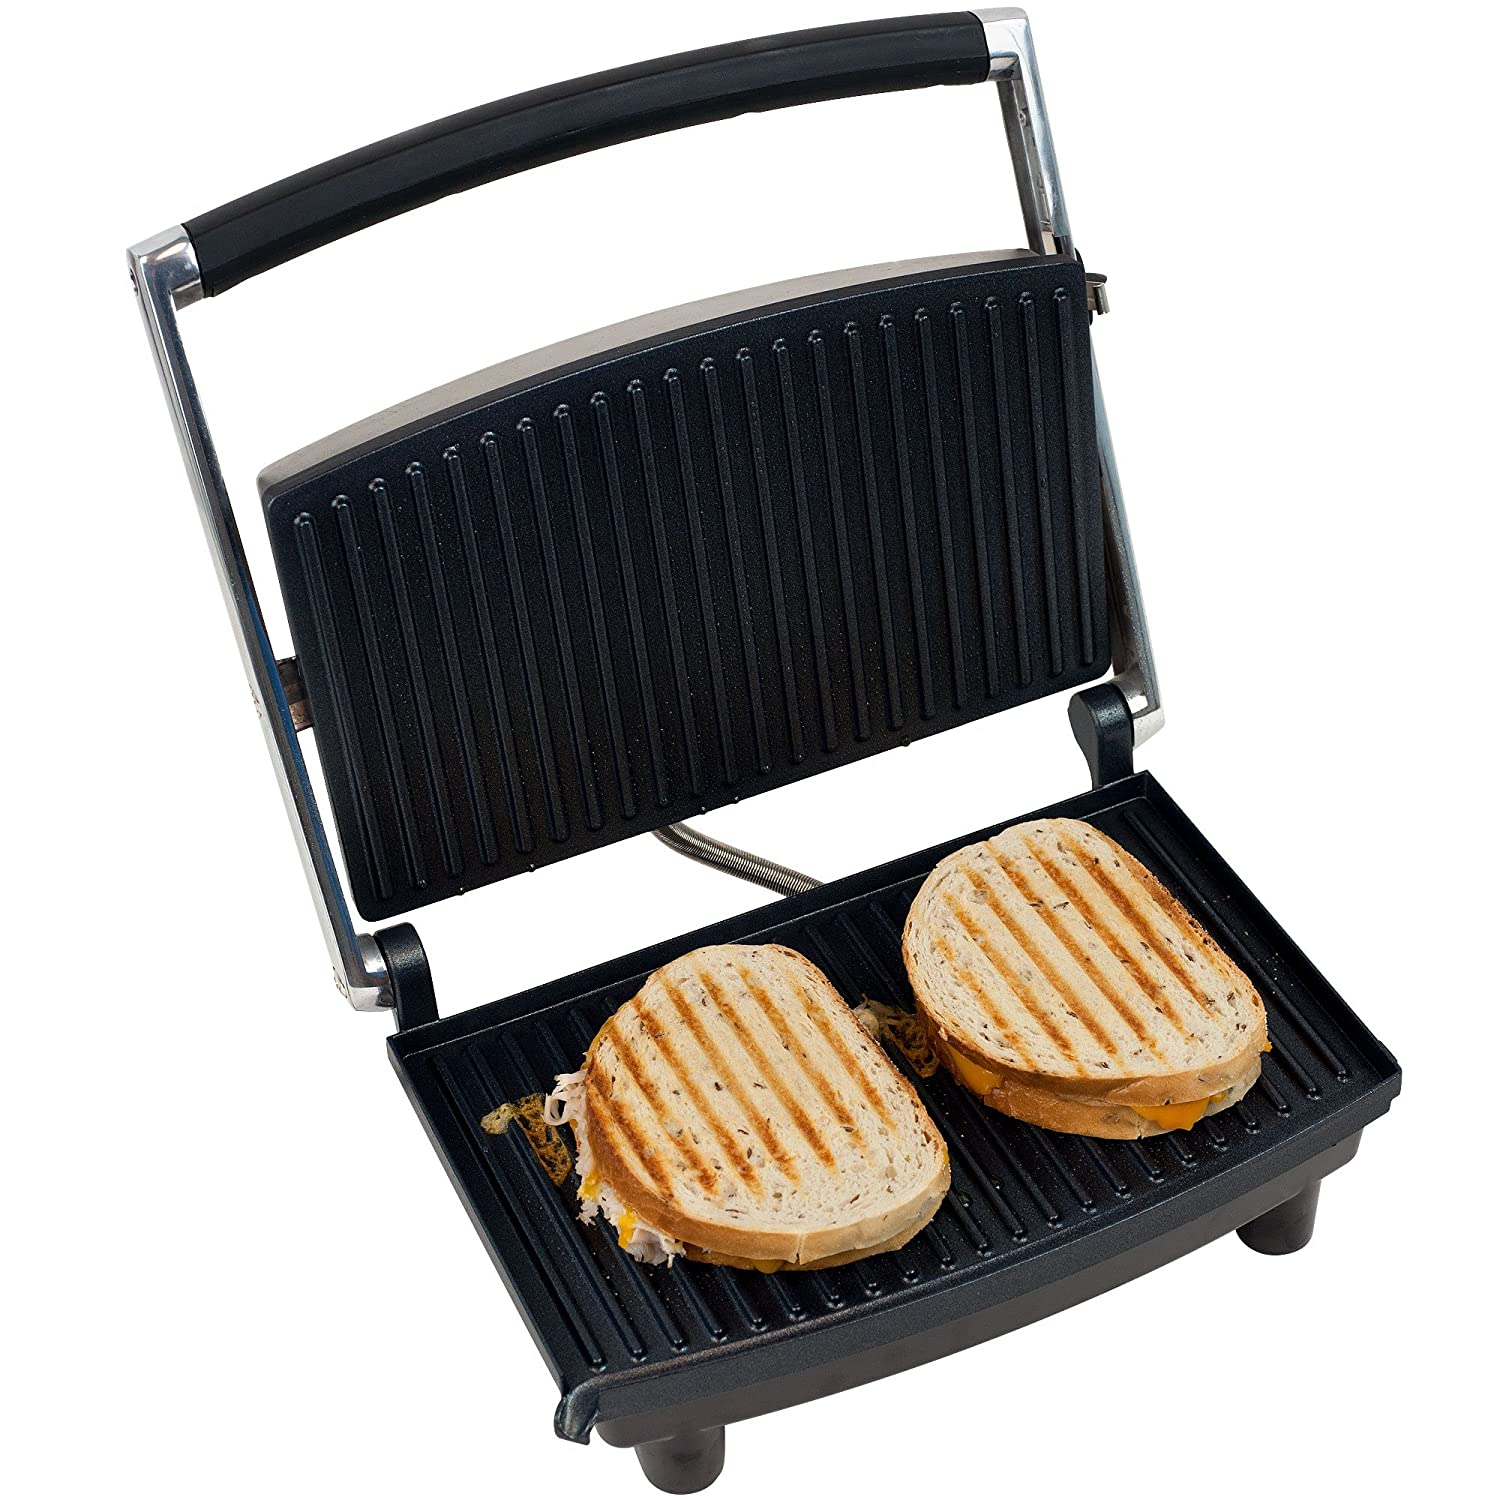 Amazon Chef Buddy 80 1840 Panini Press Grill and Gourmet